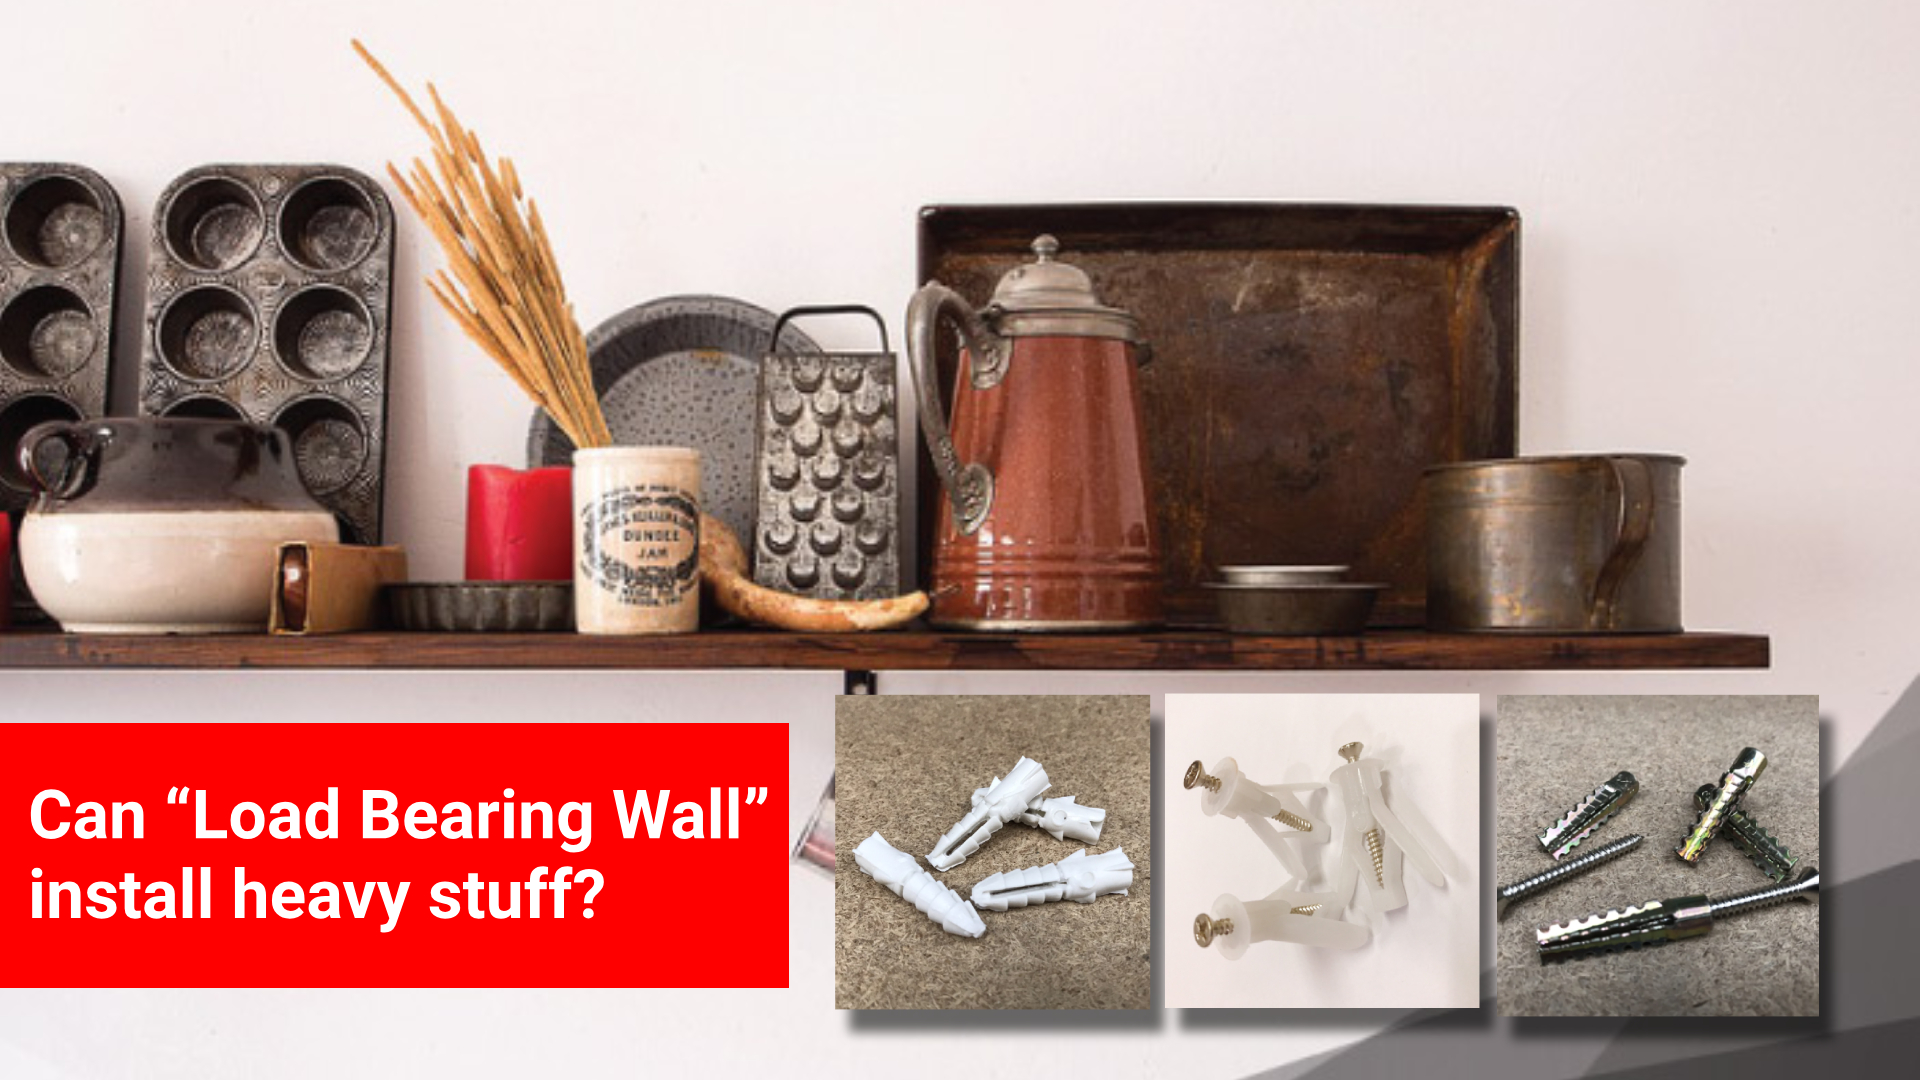 Can Load Bearing Wall install heavy stuff by SCG